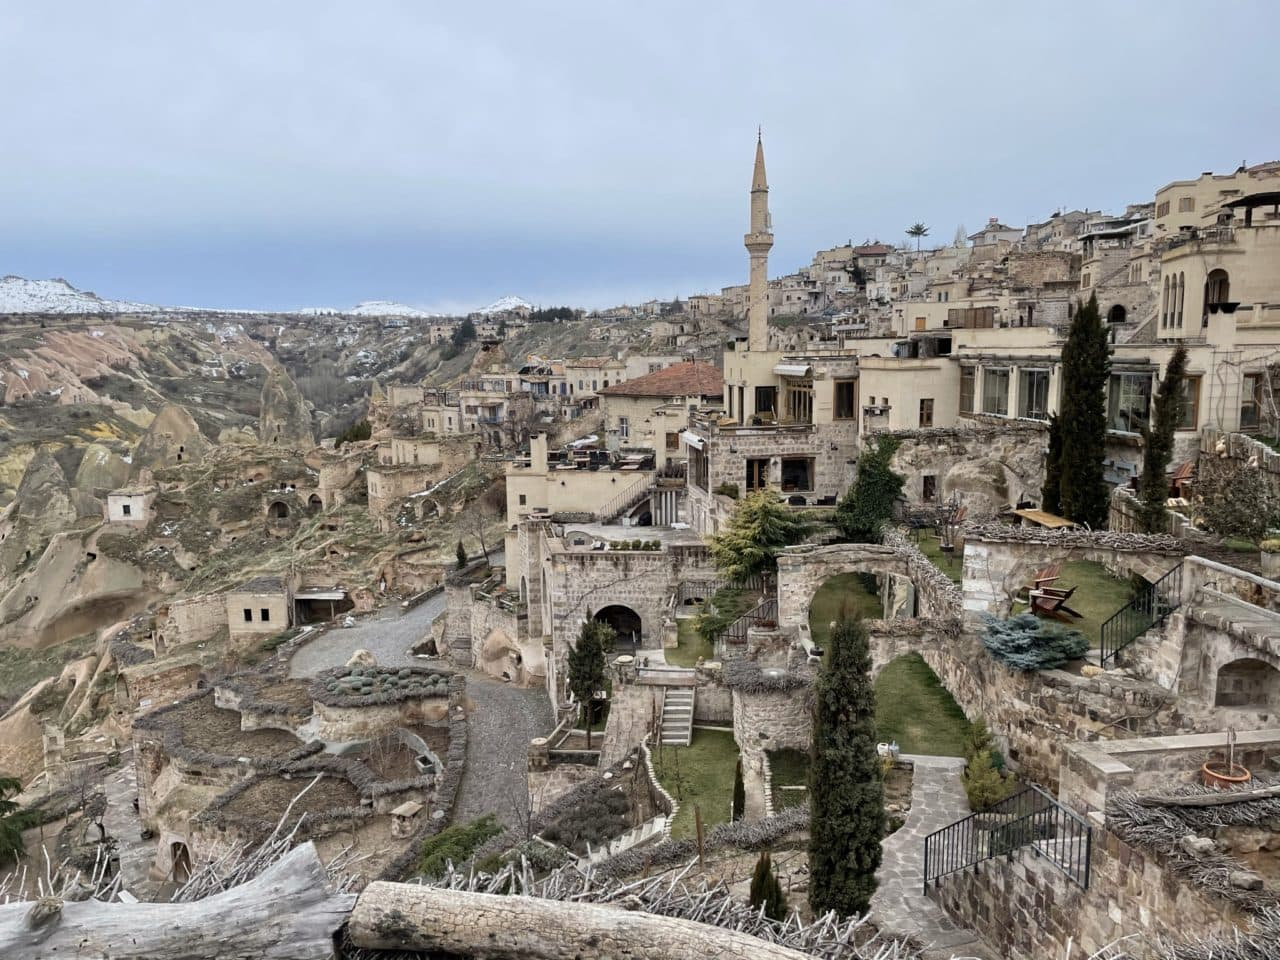 Beautiful view of Cappadocia and the caves and tunnels it's built into.